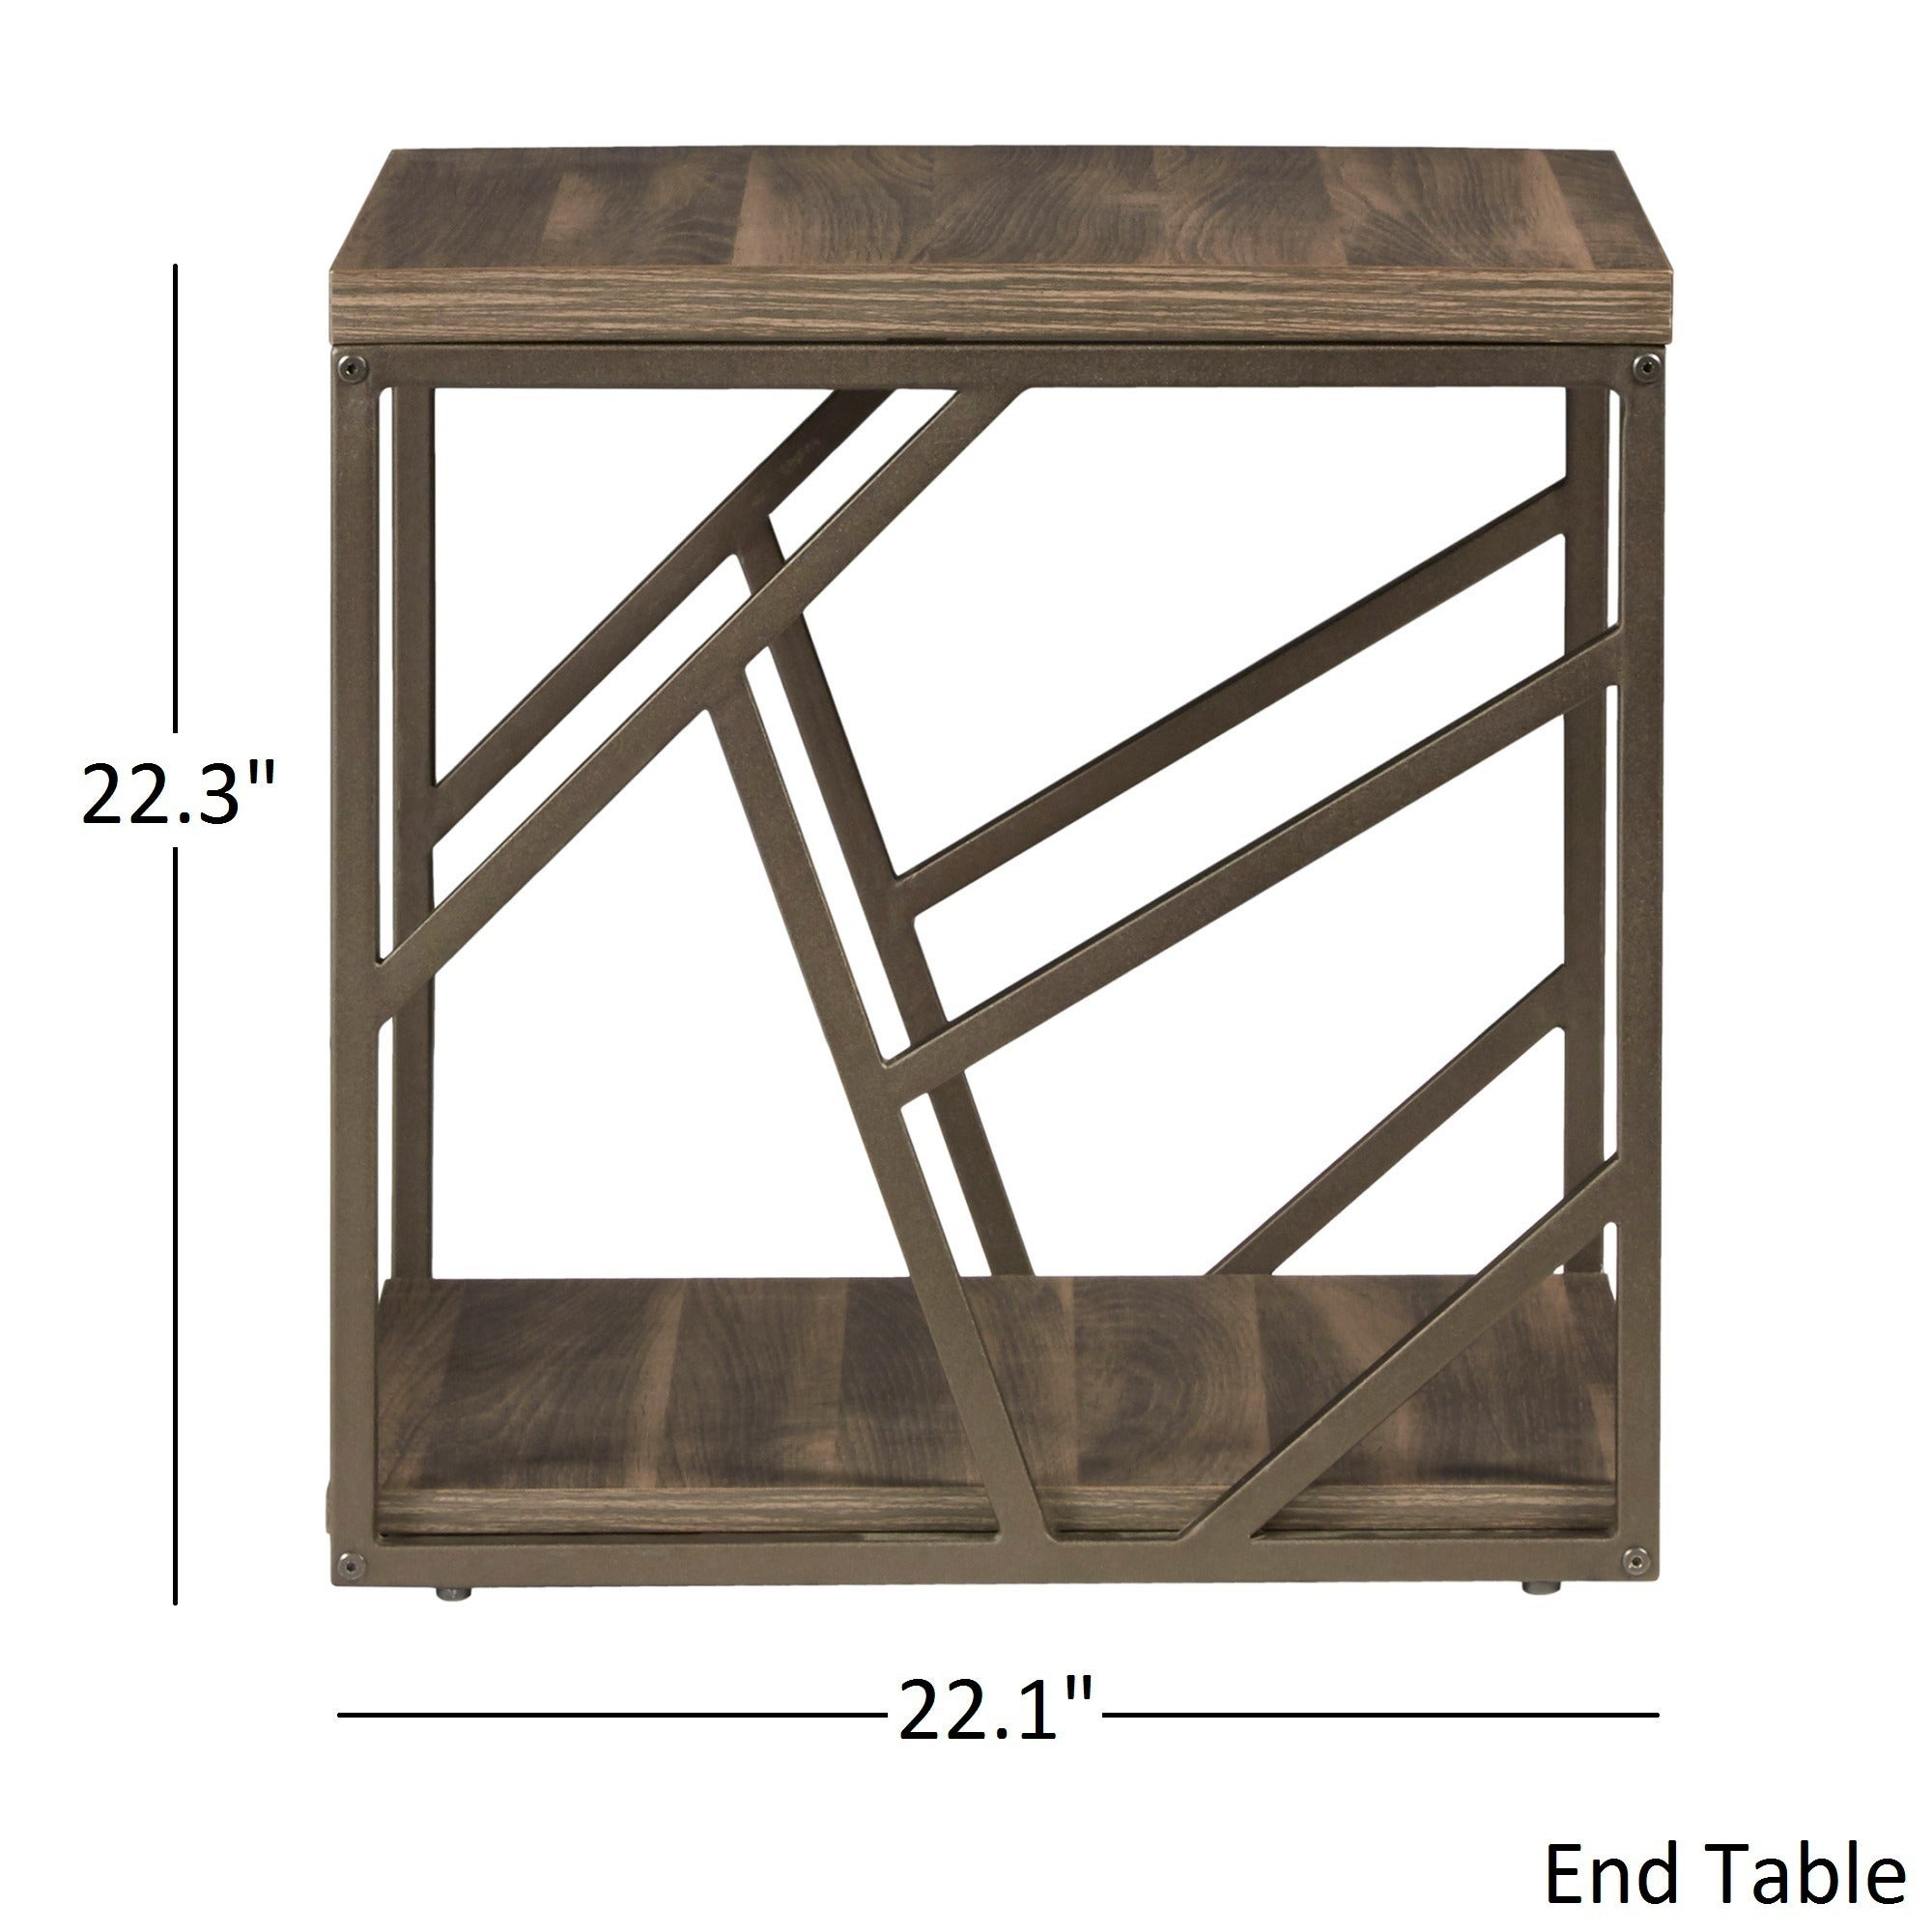 distressed coffee table appealing ideas wood country design high definition brown tables wallpaper rectangle popular